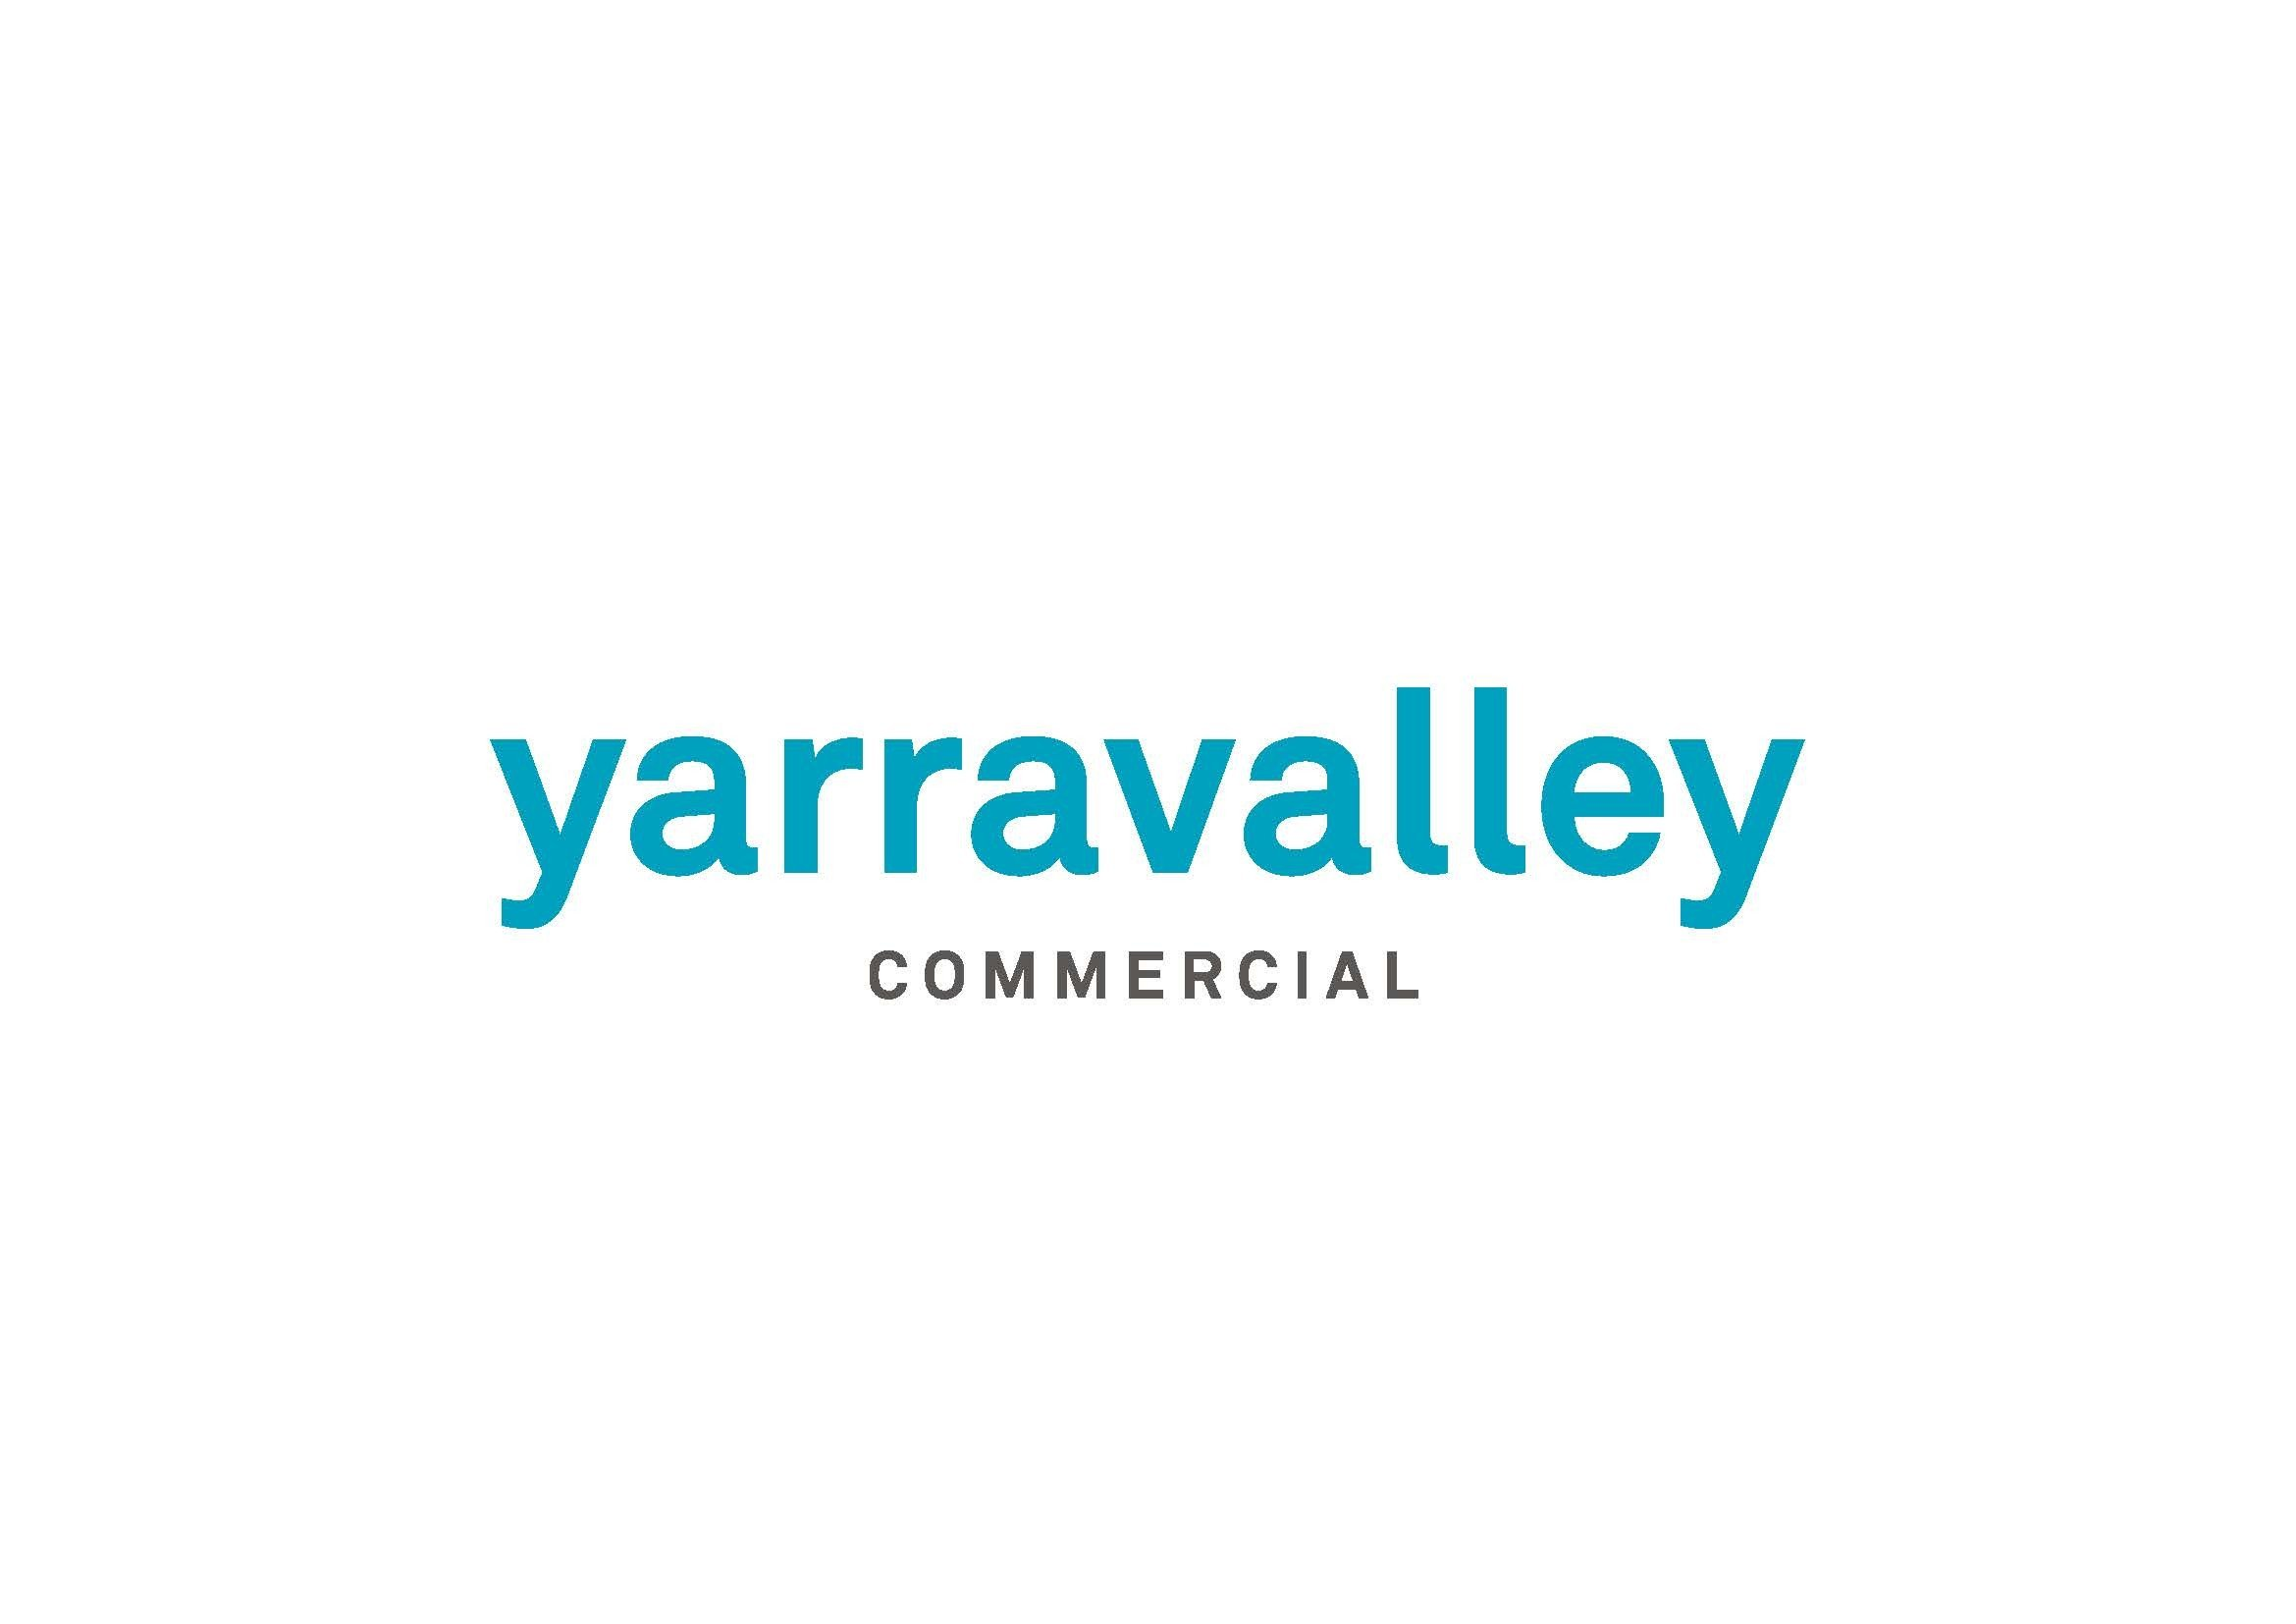 Yarra Valley Commercial